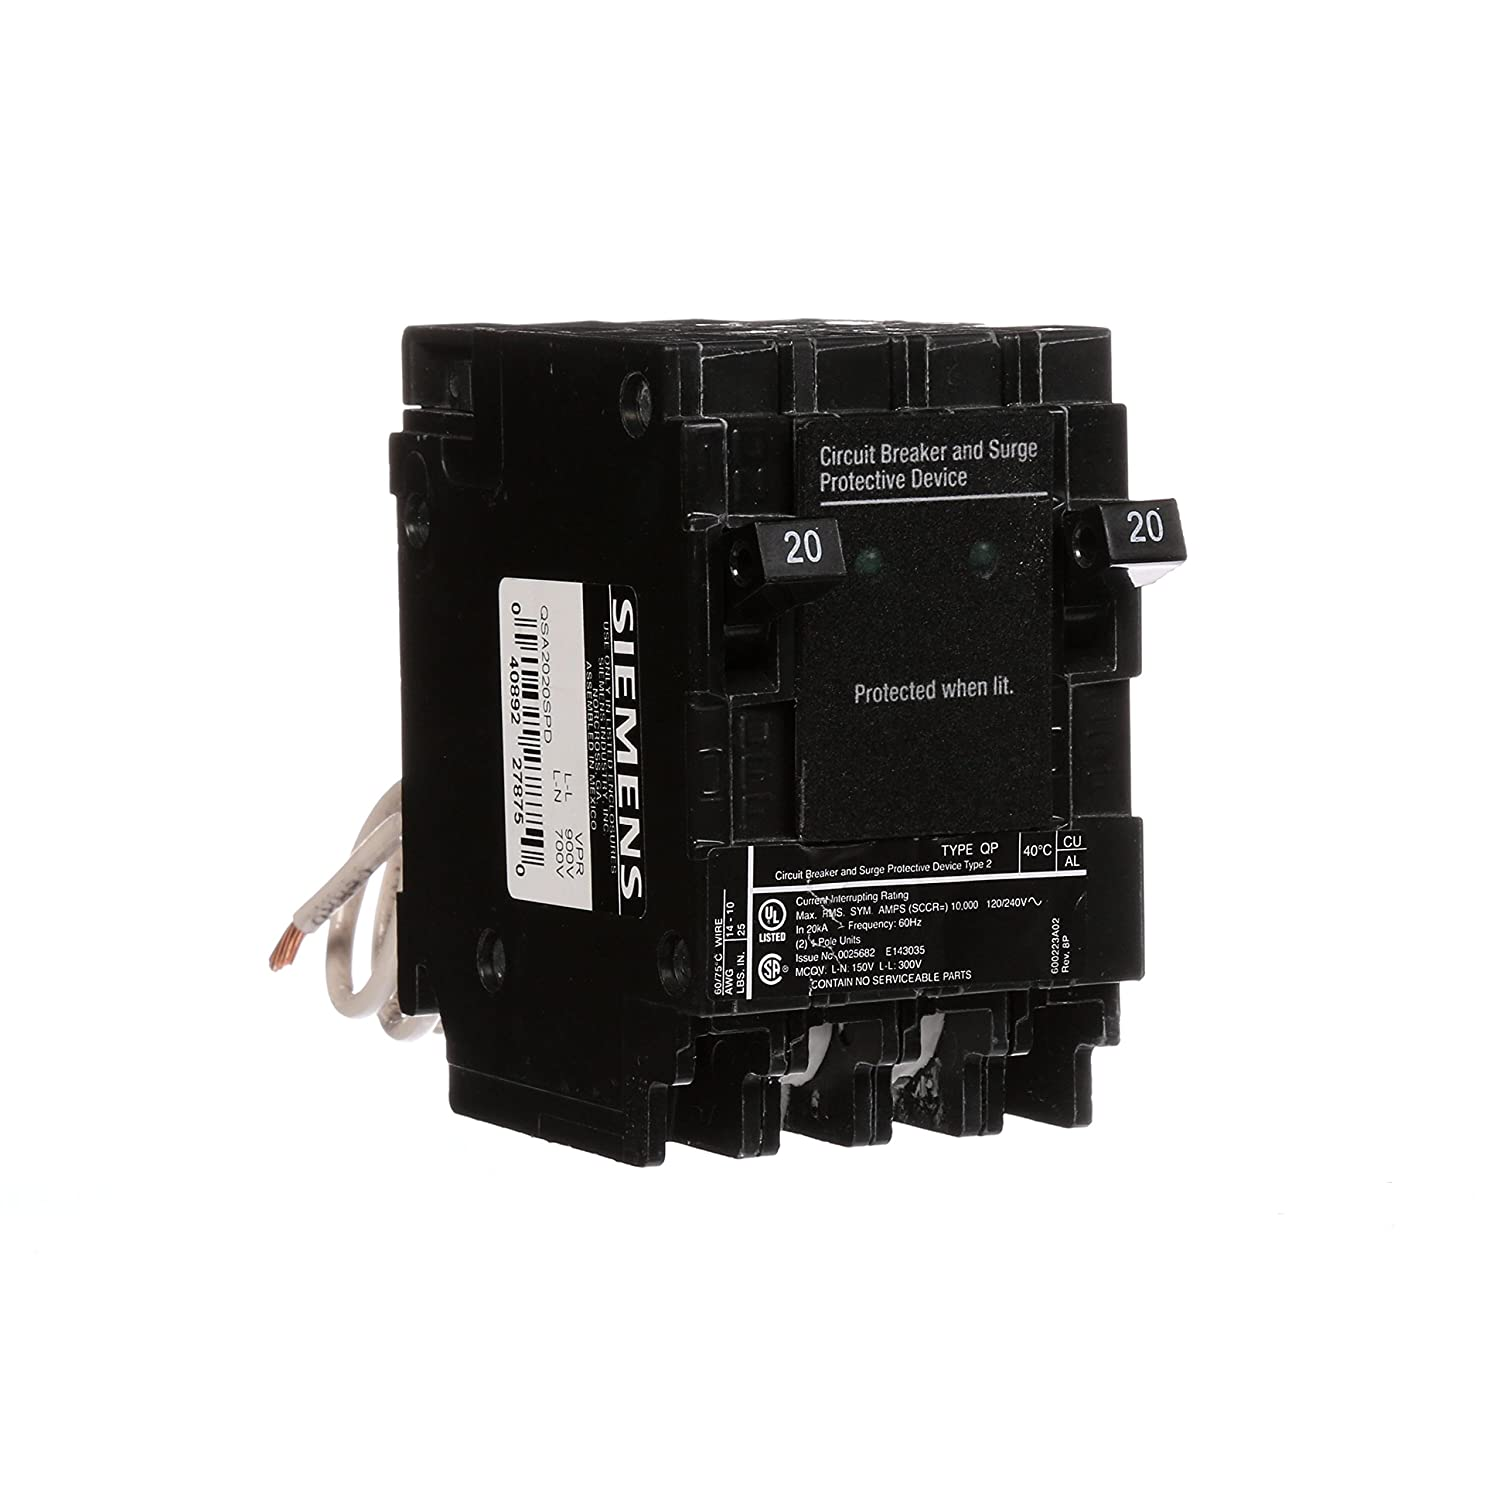 Siemens Qsa2020spd Whole House Surge Protection With Two 20 Amp Wiring Diagram 240 Volt Circuit Shop Pinterest Breakers For Use Only On Panels Main Breaker